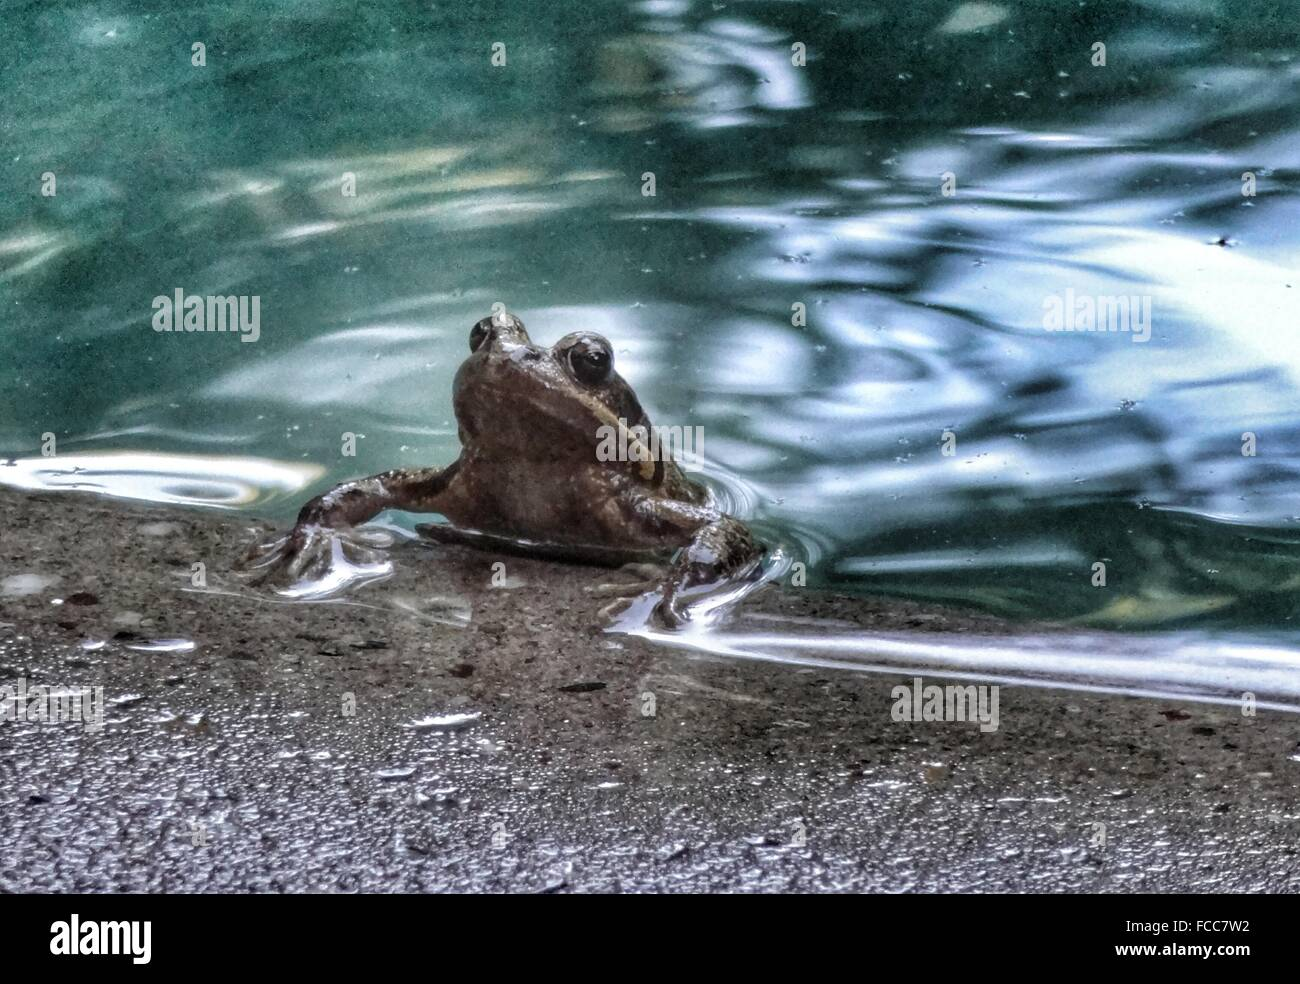 Frog Coming Out From Lake - Stock Image